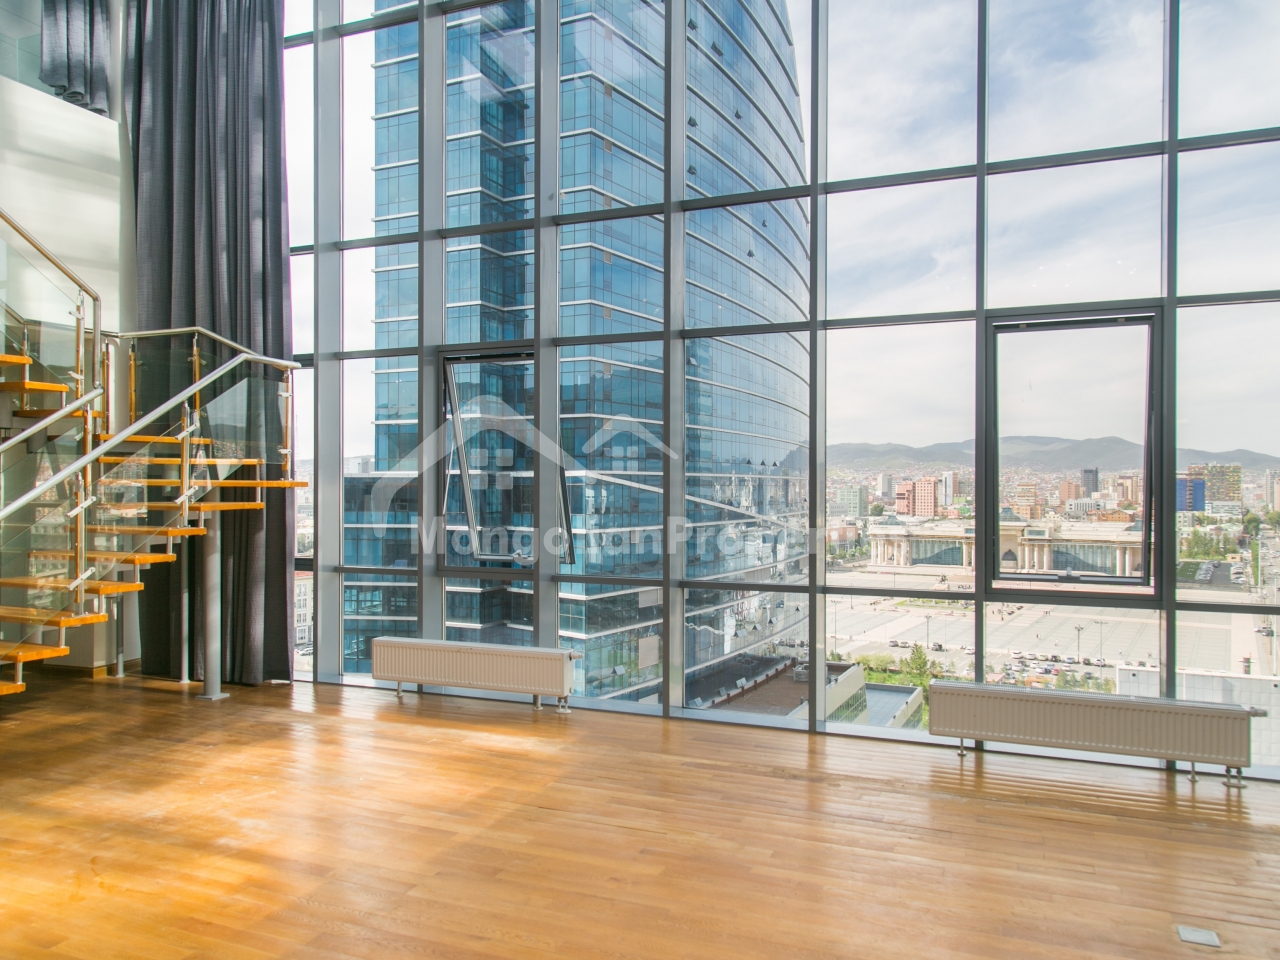 FOR RENT: Choijin Suites, 344m2, 3 bedroom, 1 office and 4.5bath Penthouse with killer 2 terraces and 1 indoor terrace facing Sukhbaatar Square and Bogd Mountain